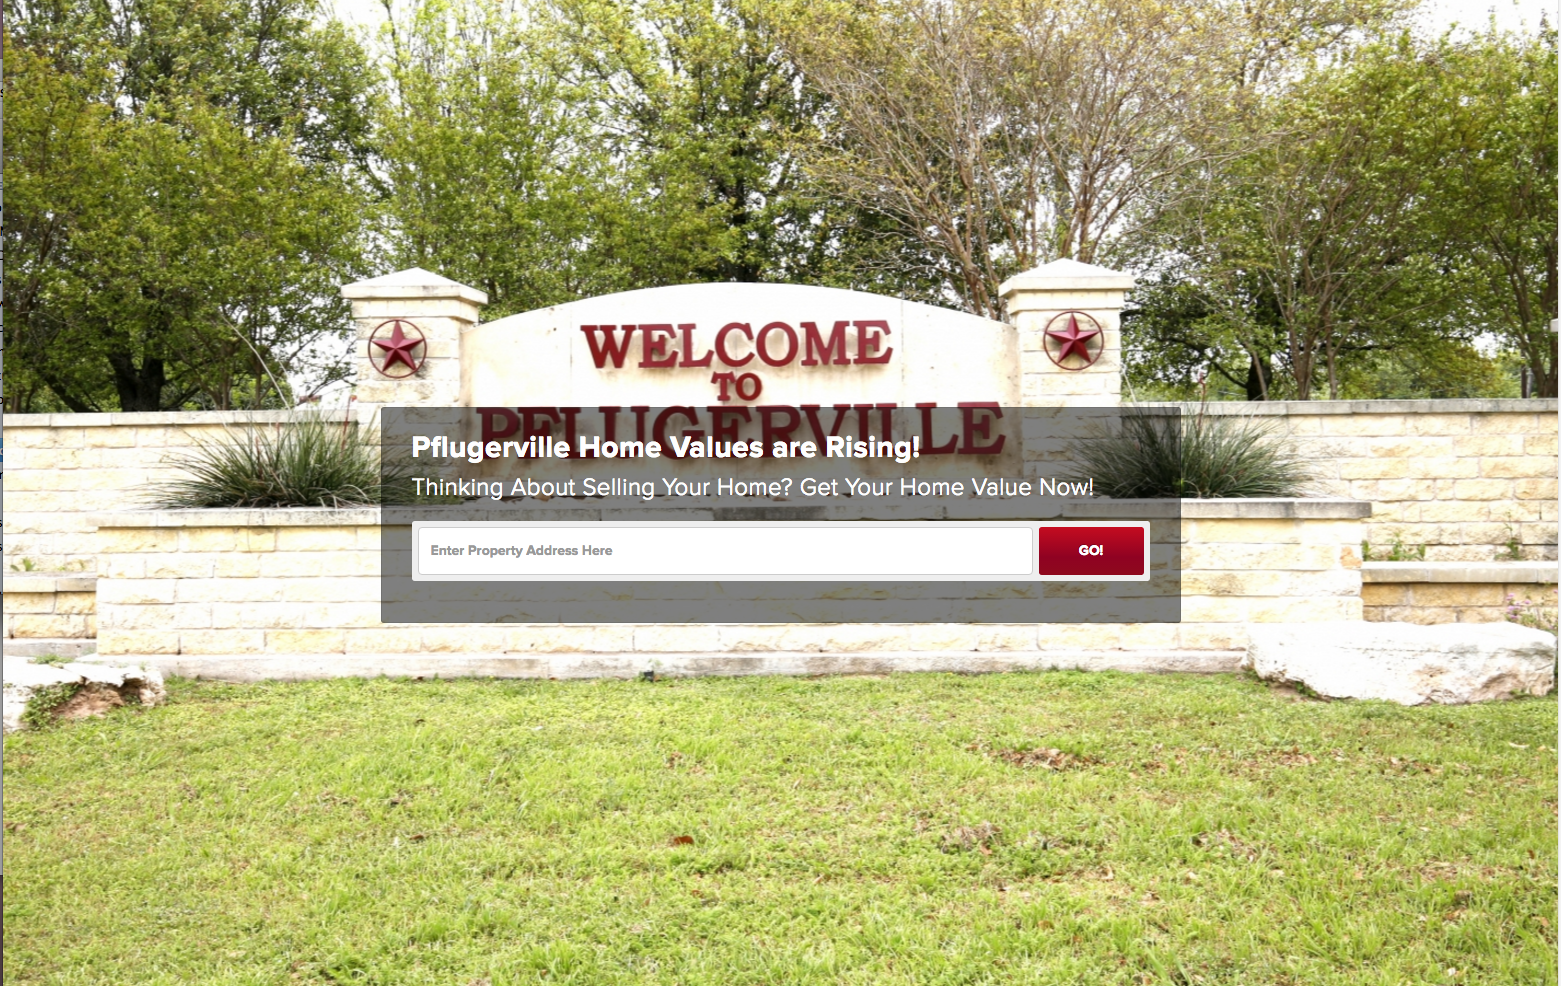 Pflugerville_Homes_For_Sale_Landing_Page_2